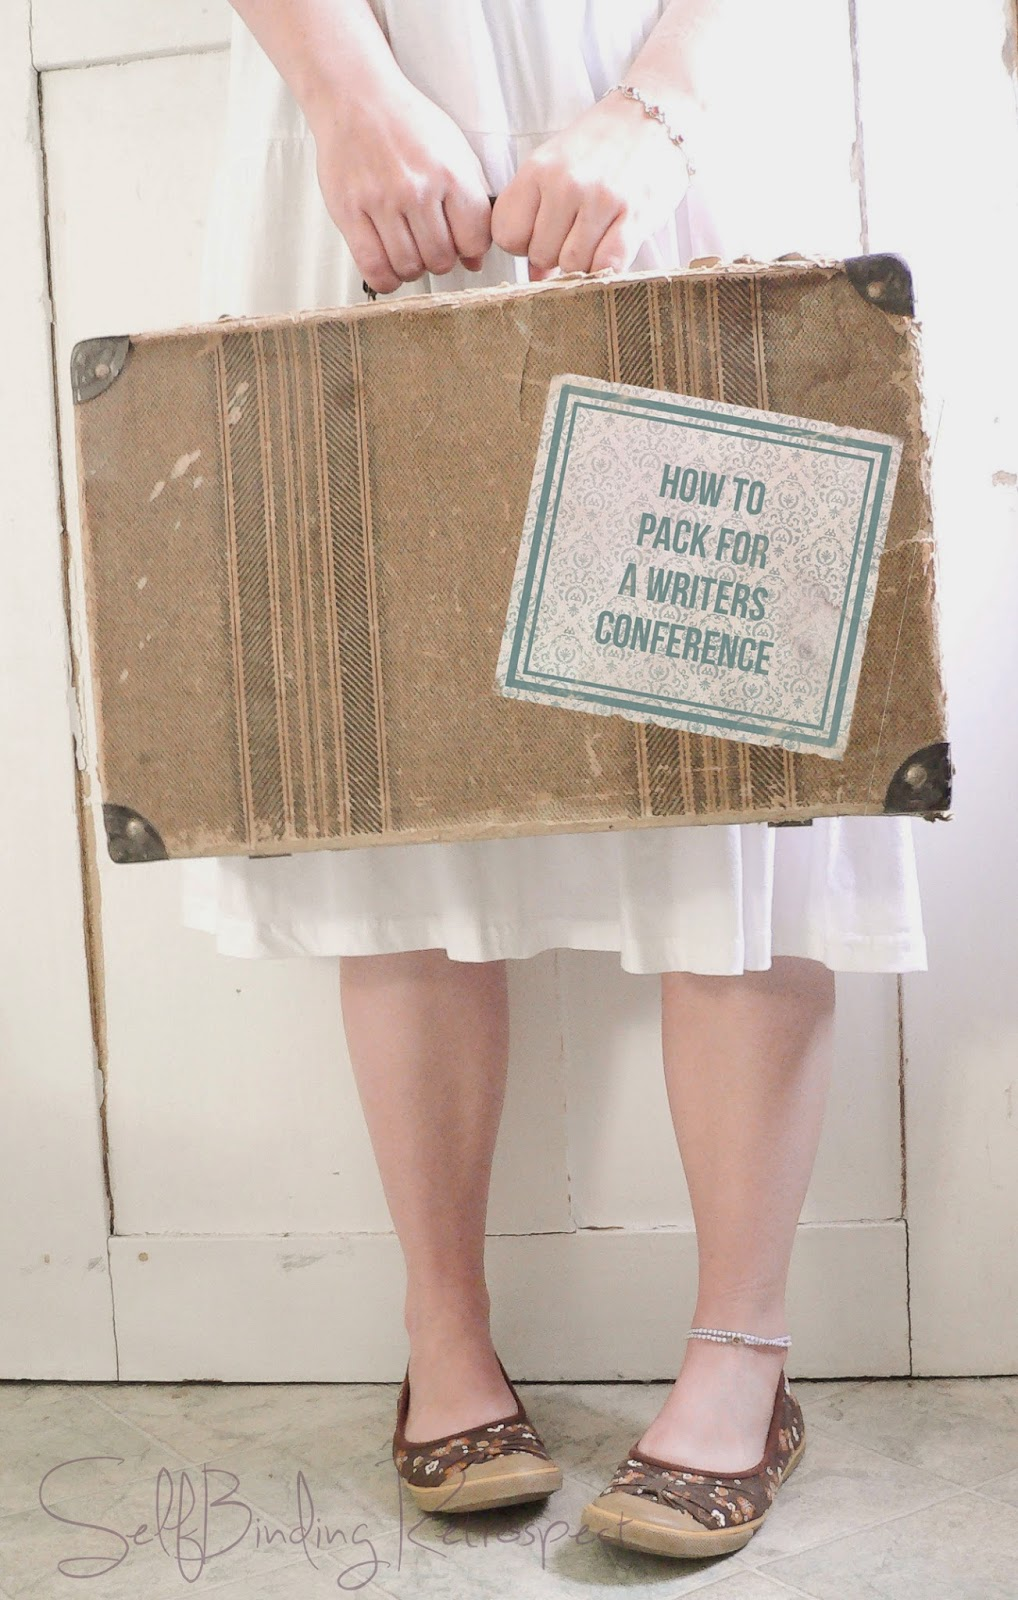 How To Pack For A Writers Conference - SelfBinding Retrospect by Alanna Rusnak